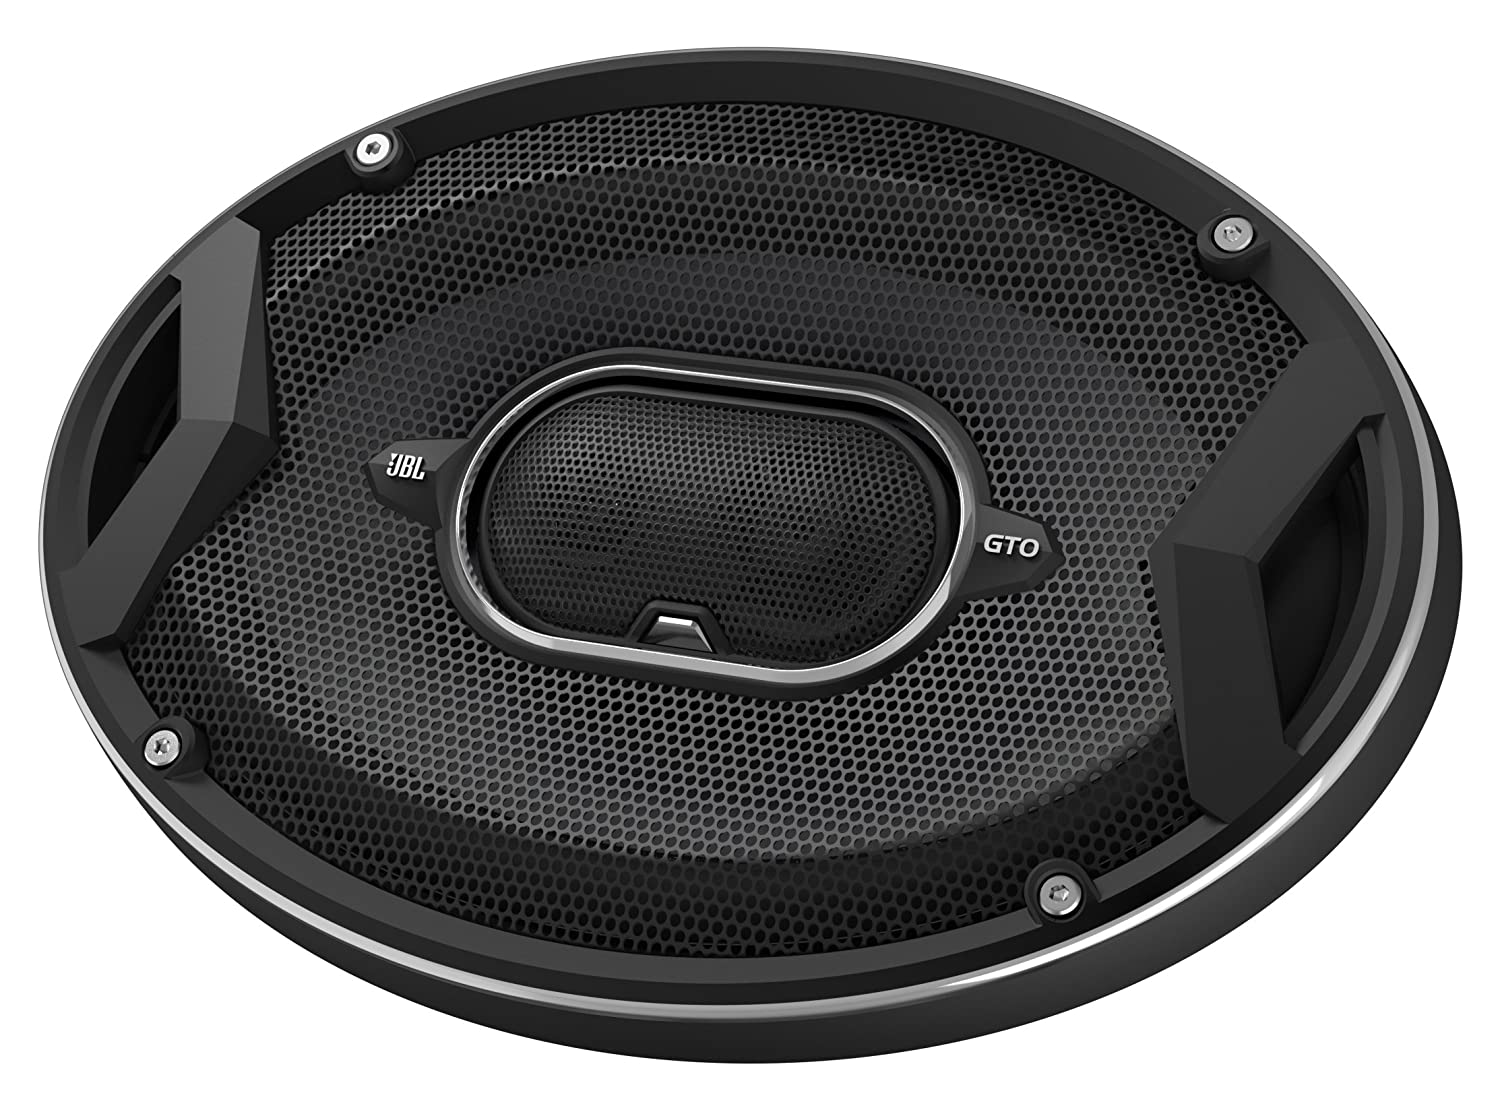 Set of 2 JBL GTO939 Premium 6 x 9 Inches Co-Axial Speaker